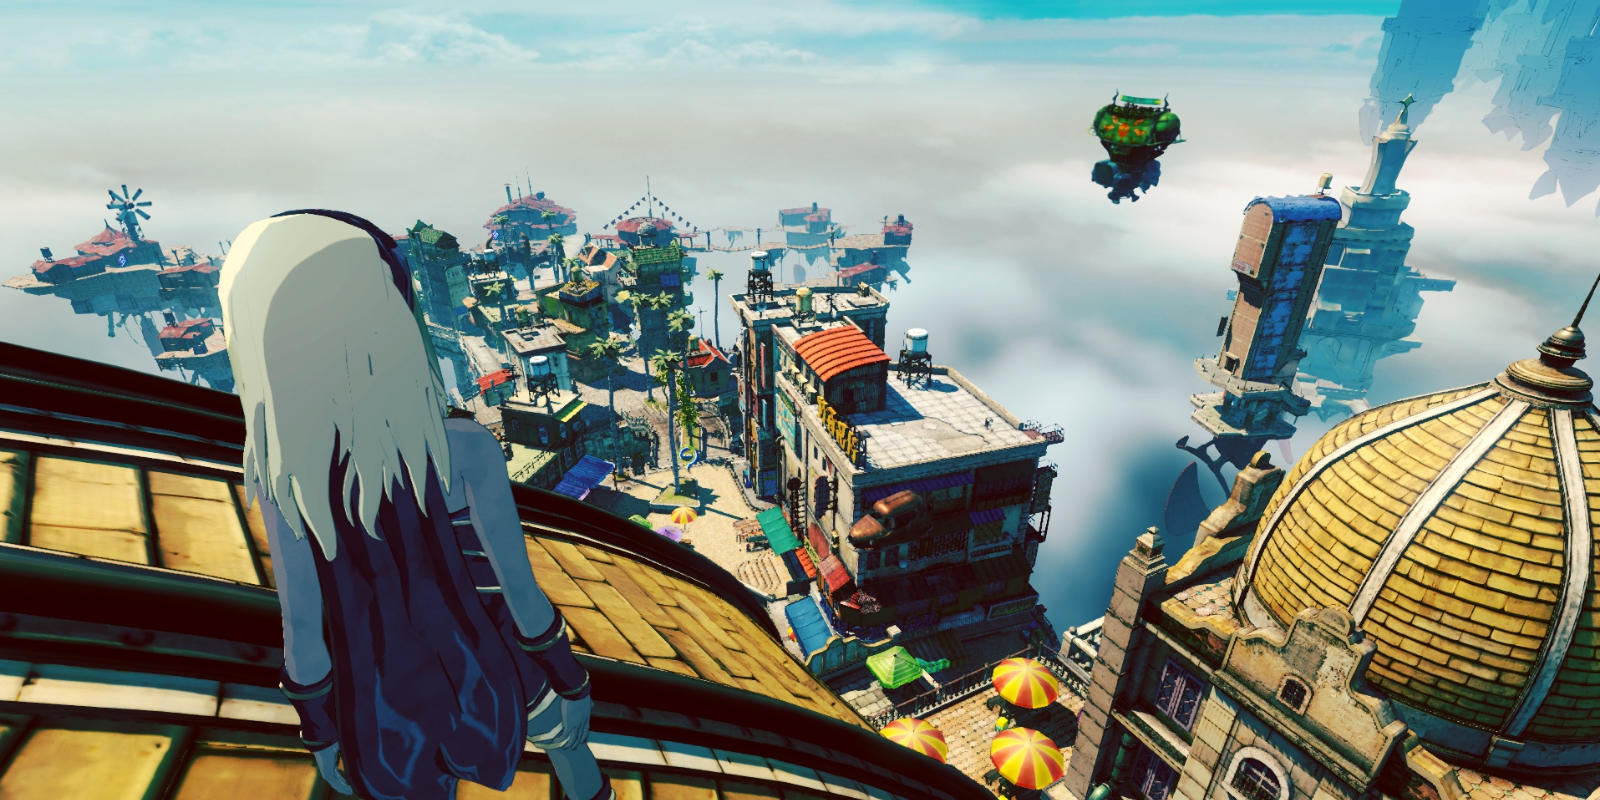 Gravity Rush 2's plucky heroine, Kat, overlooks the colorful tents of the street markets in Jirga Para Lhao